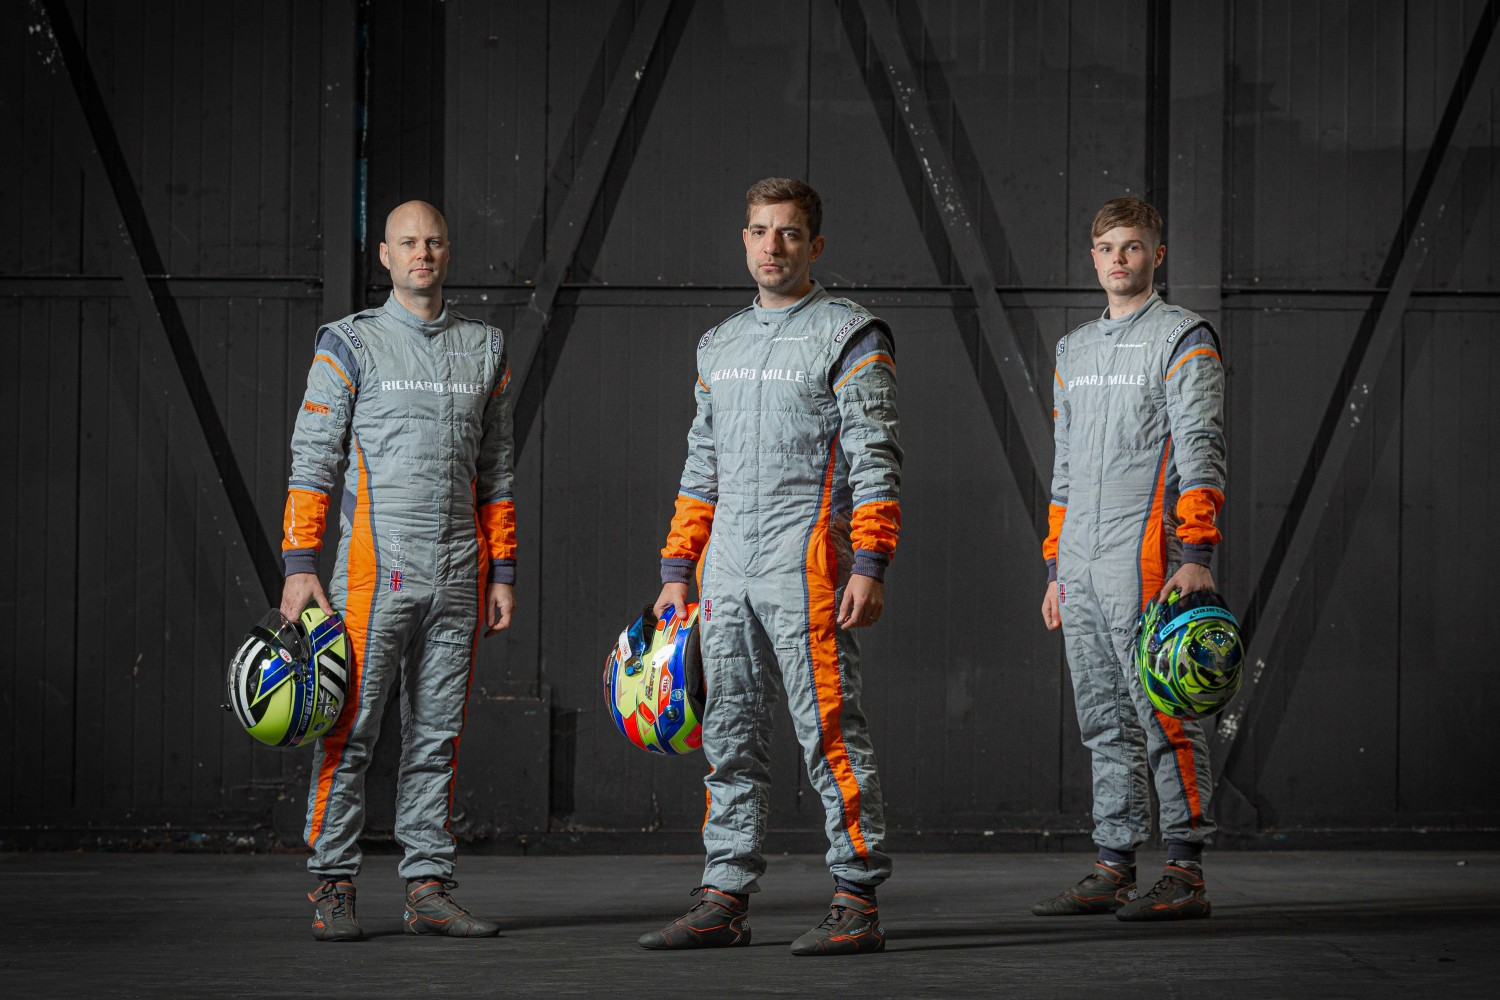 Optimum Motorsport unveil all-Pro McLaren line-up for GT World Challenge Europe Endurance Cup